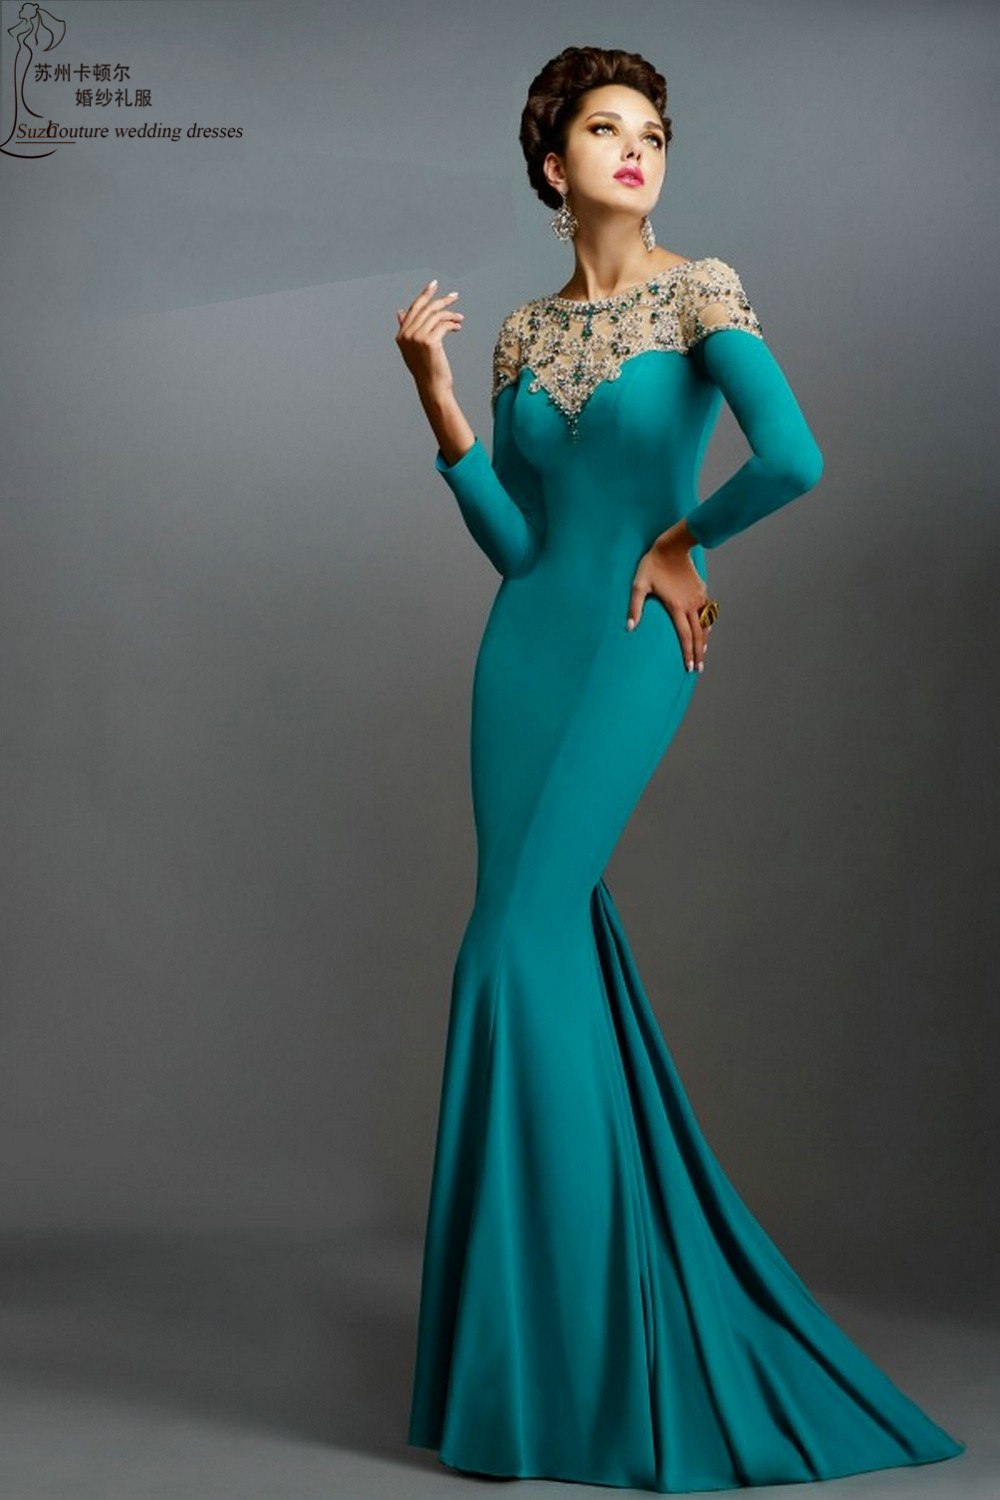 A Website For Prom Dresses - Boutique Prom Dresses